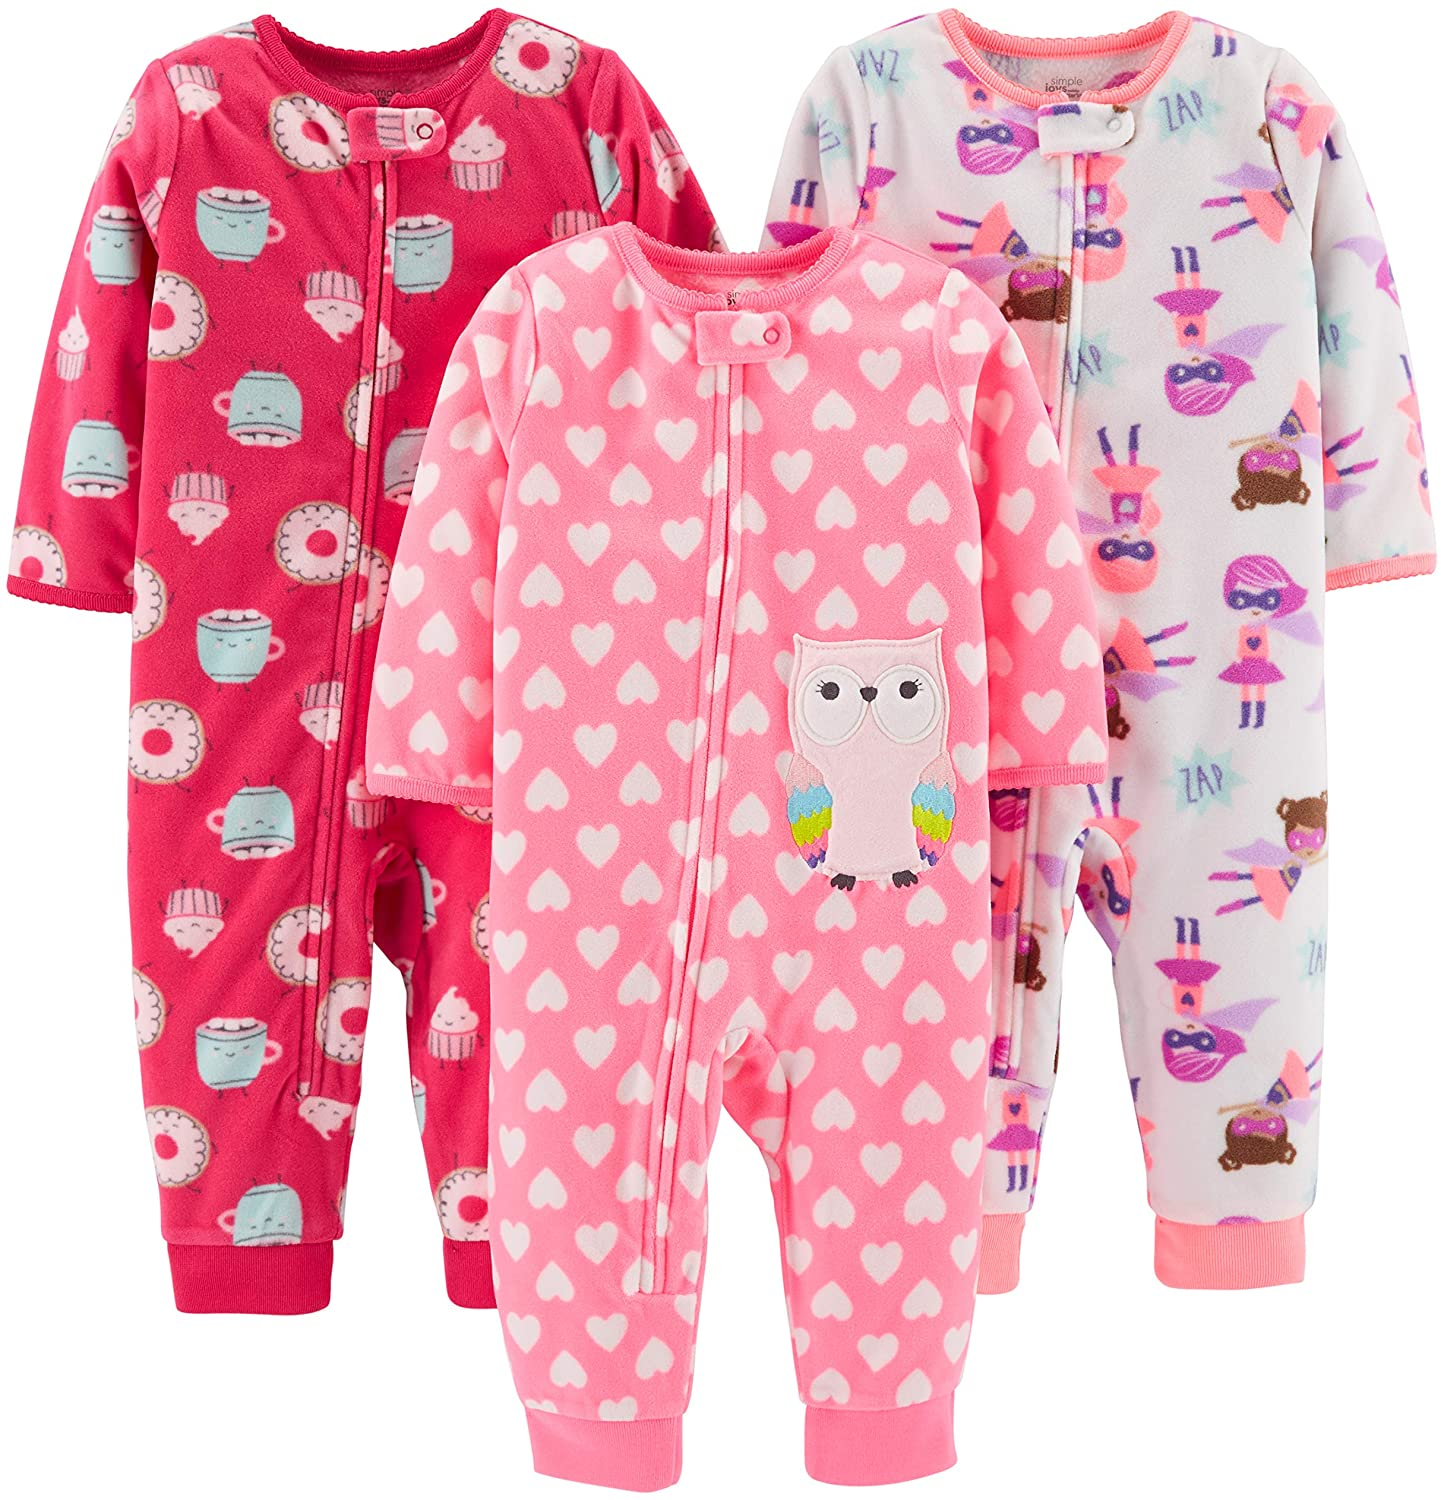 Simple Joys by Carter's Baby and Toddler Girls' 3-Pack Loose Fit Fleece Footless Pajamas